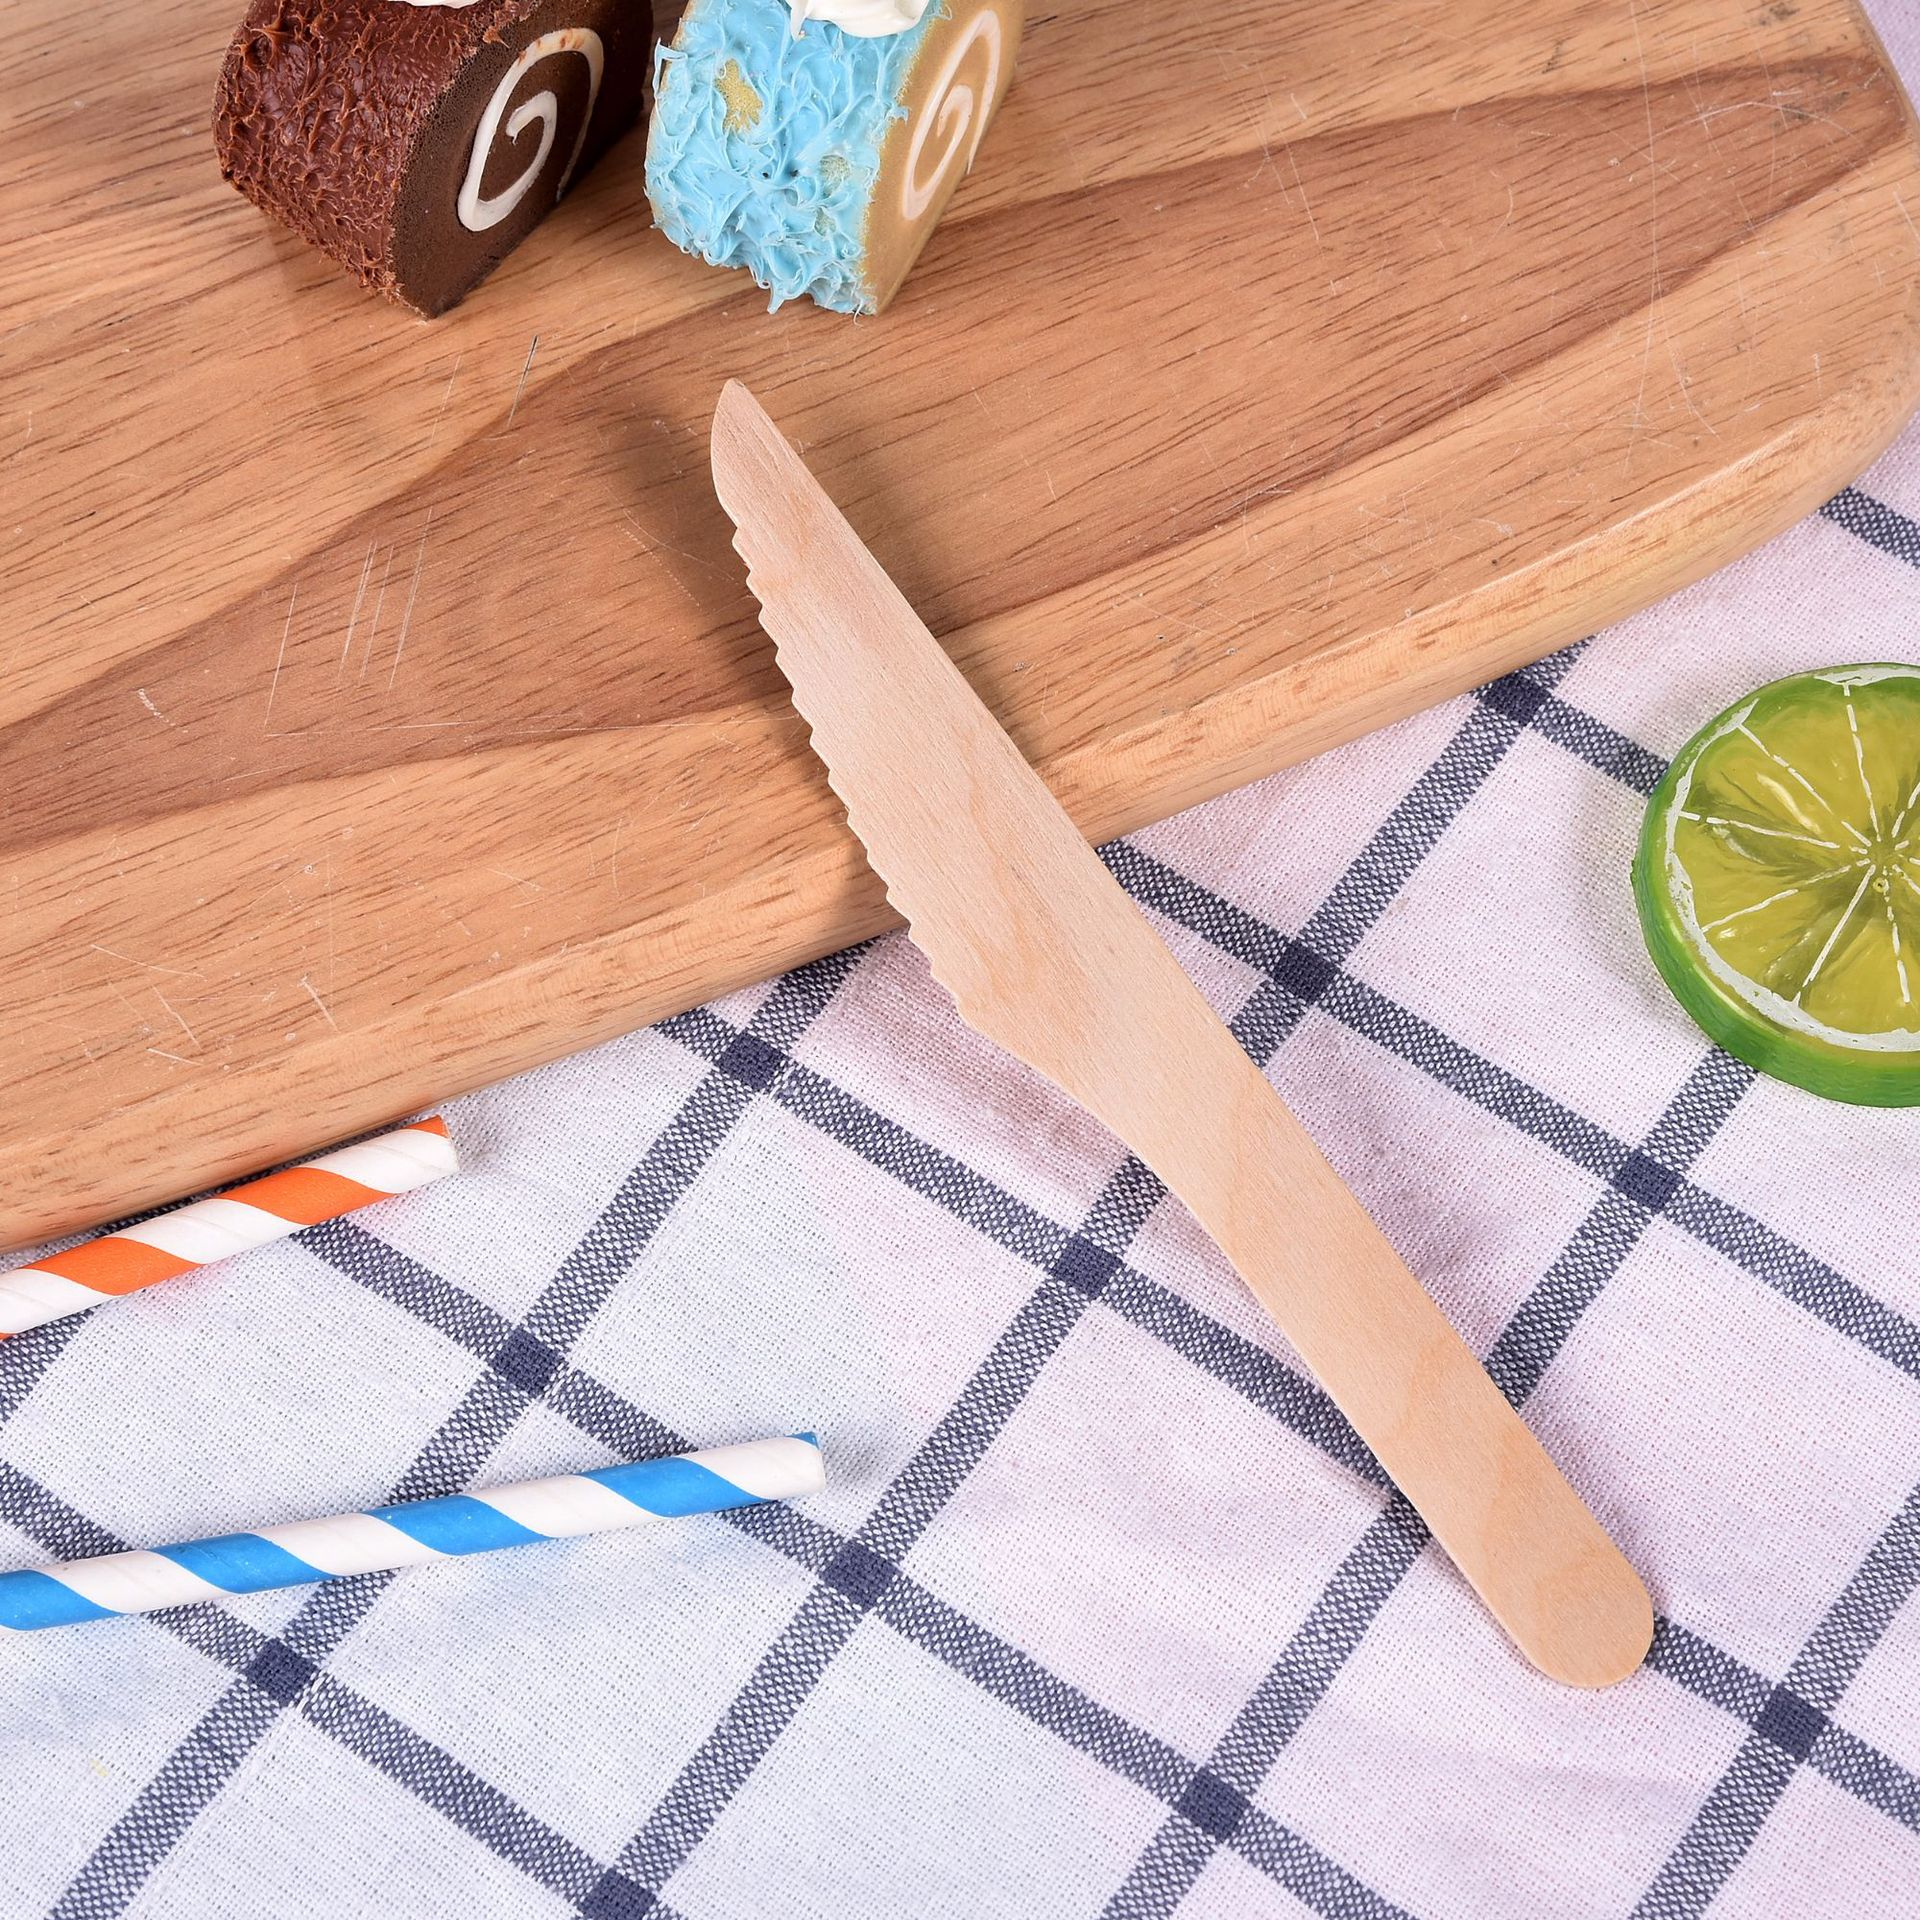 Compostable Disposable Flatware Wooden Knife Fork Spoon